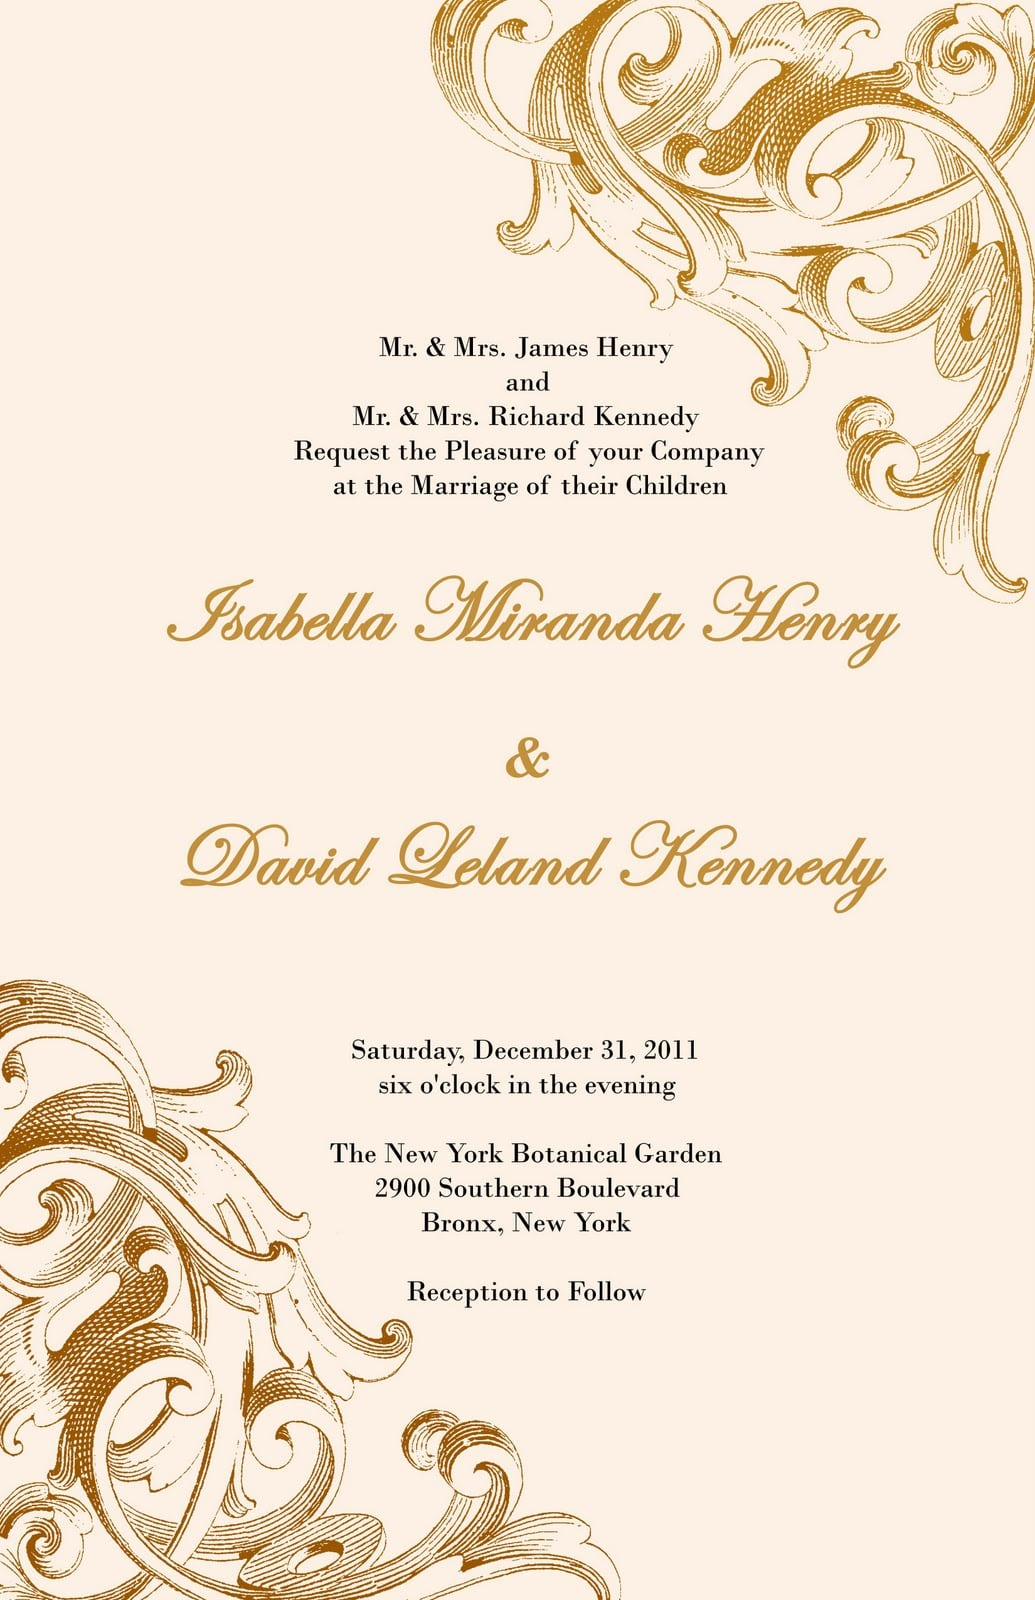 free_wedding_invitation_design.jpg